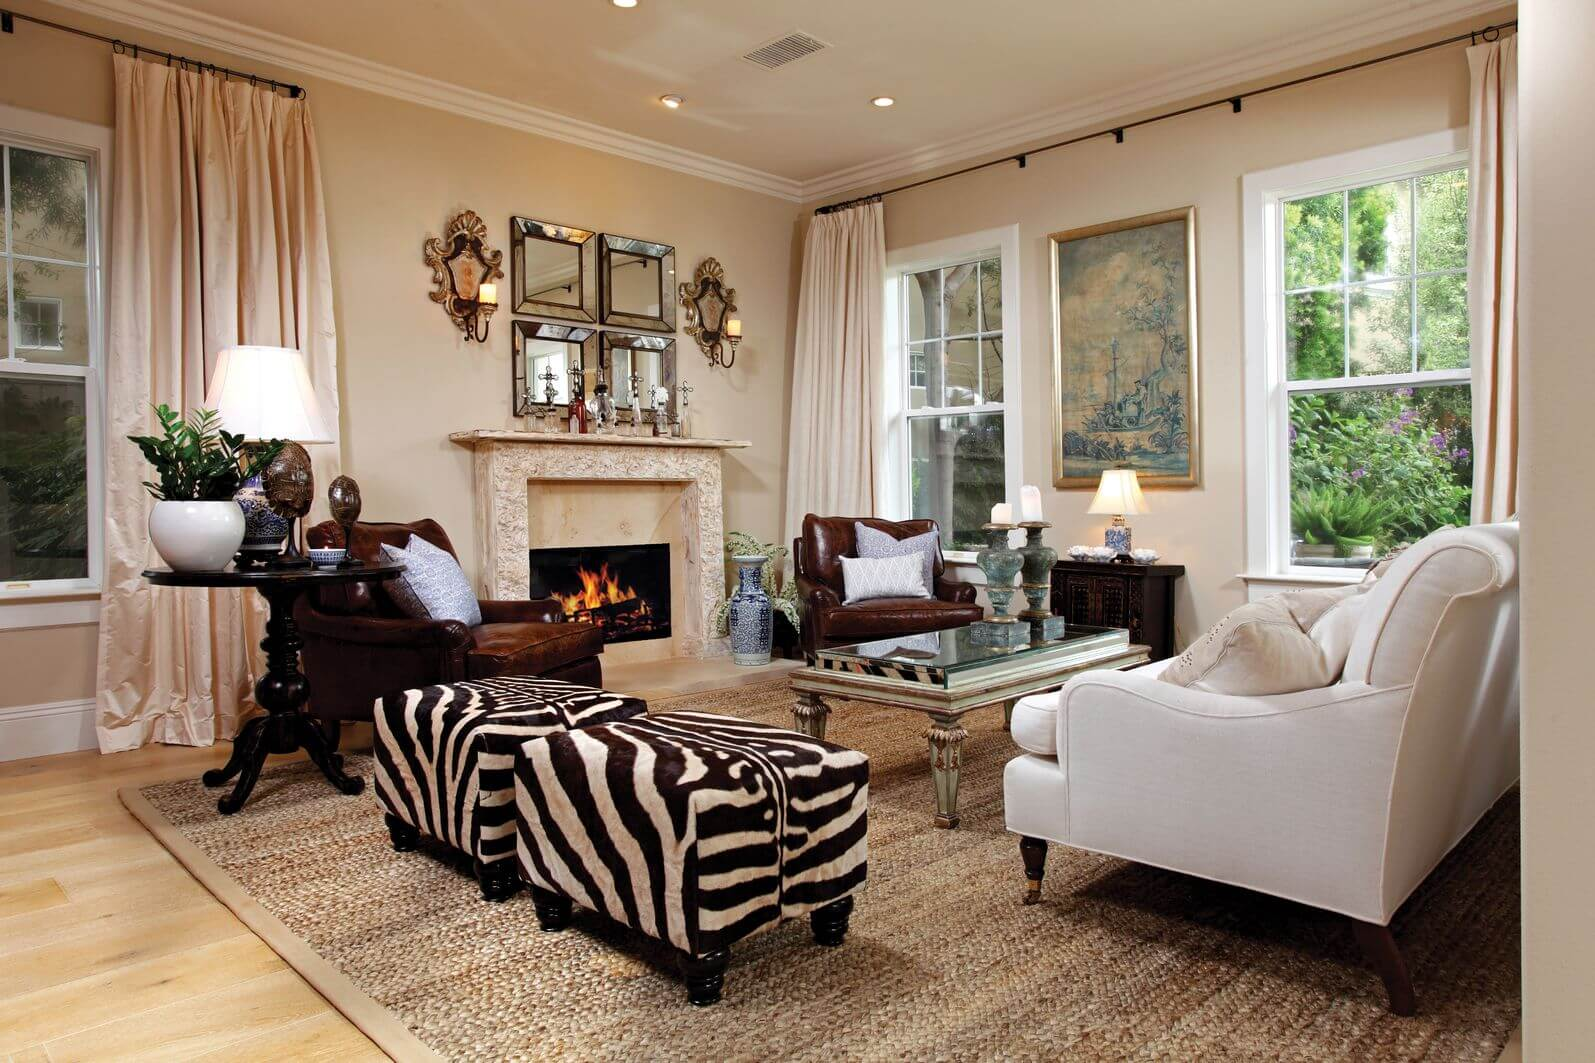 Superbe Larger Formal Living Room Incorporating Zebra Print With Two Identical  Zebra Print Ottomans Off To The